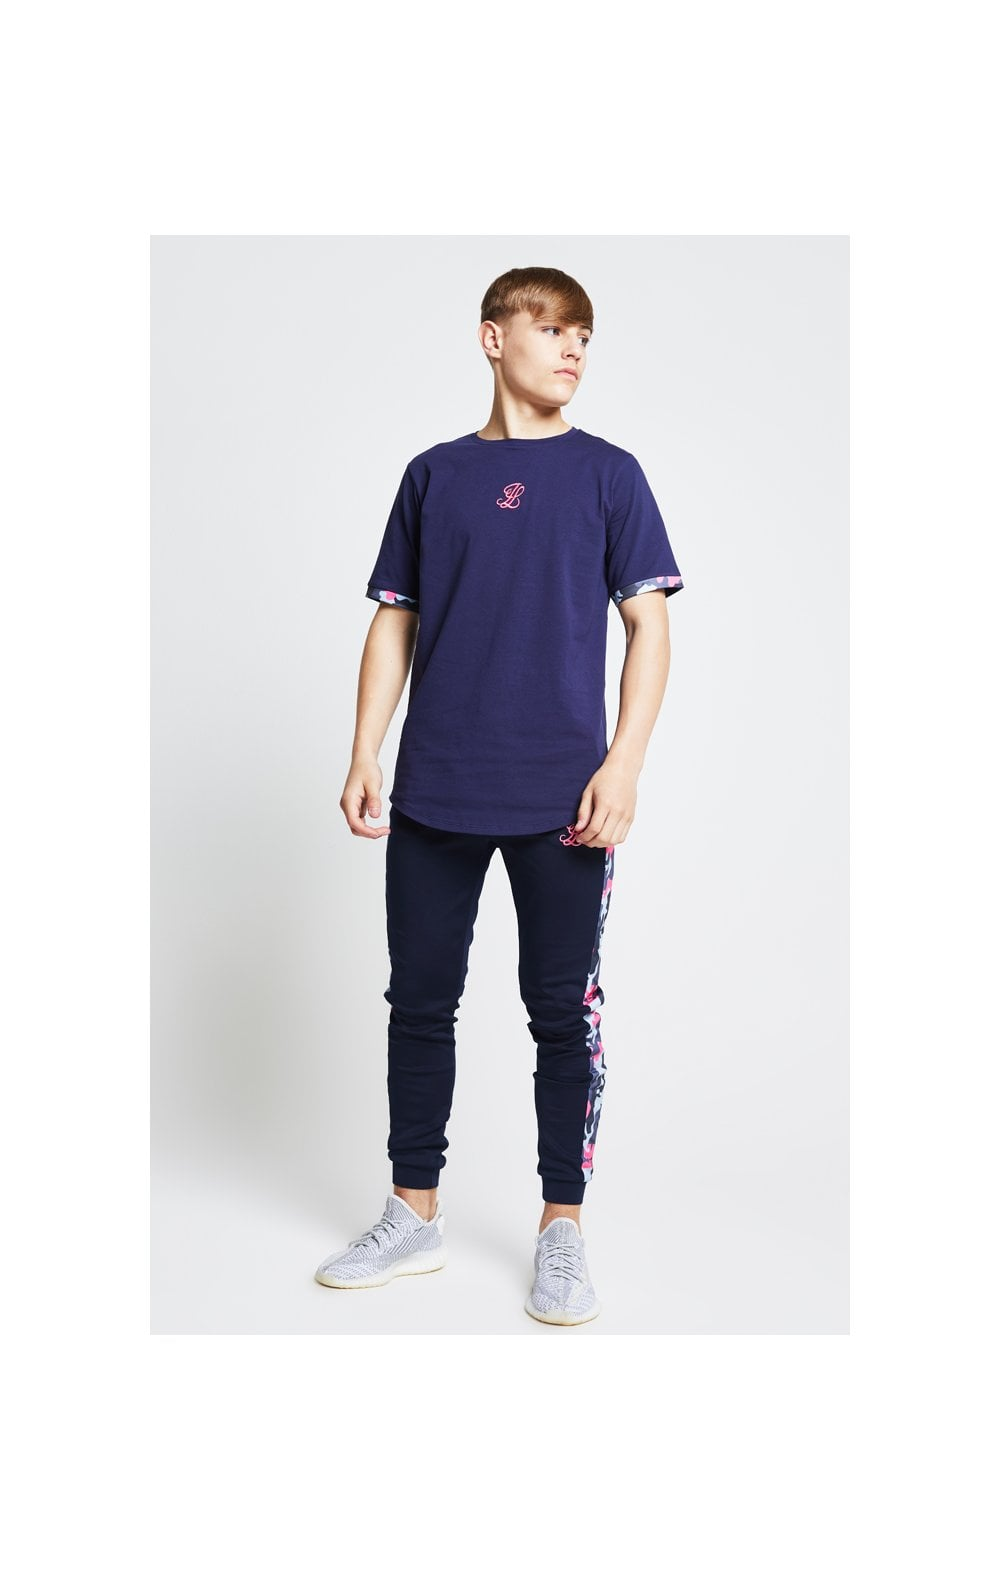 Illusive London Contrast Cuff Tee – Navy & Neon Pink Camo (3)